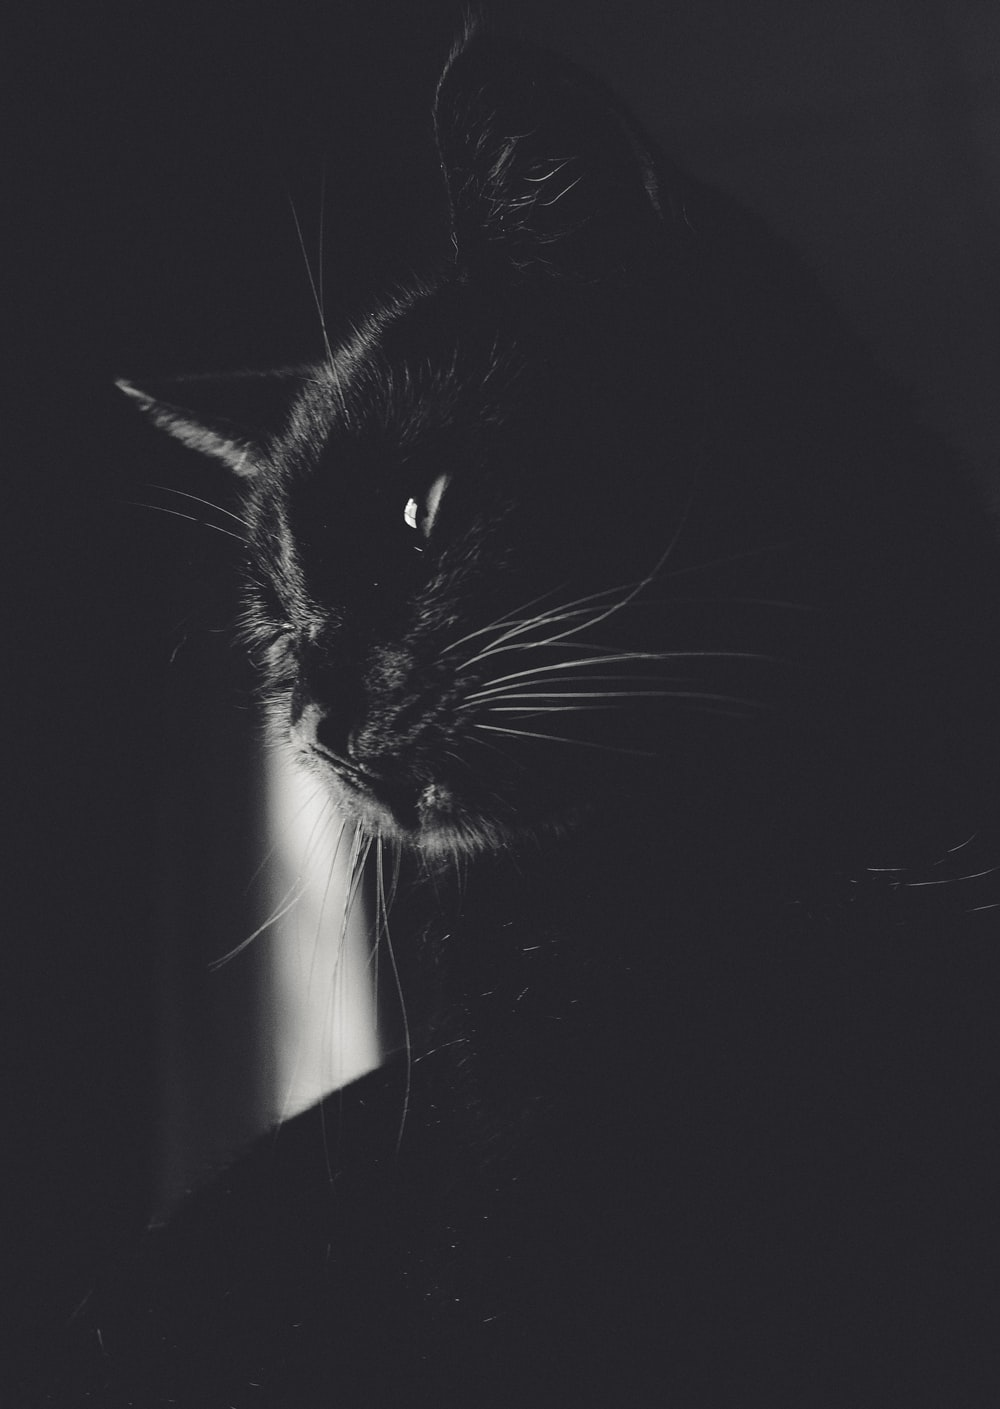 Cute Cats Pictures Download Free Images On Unsplash